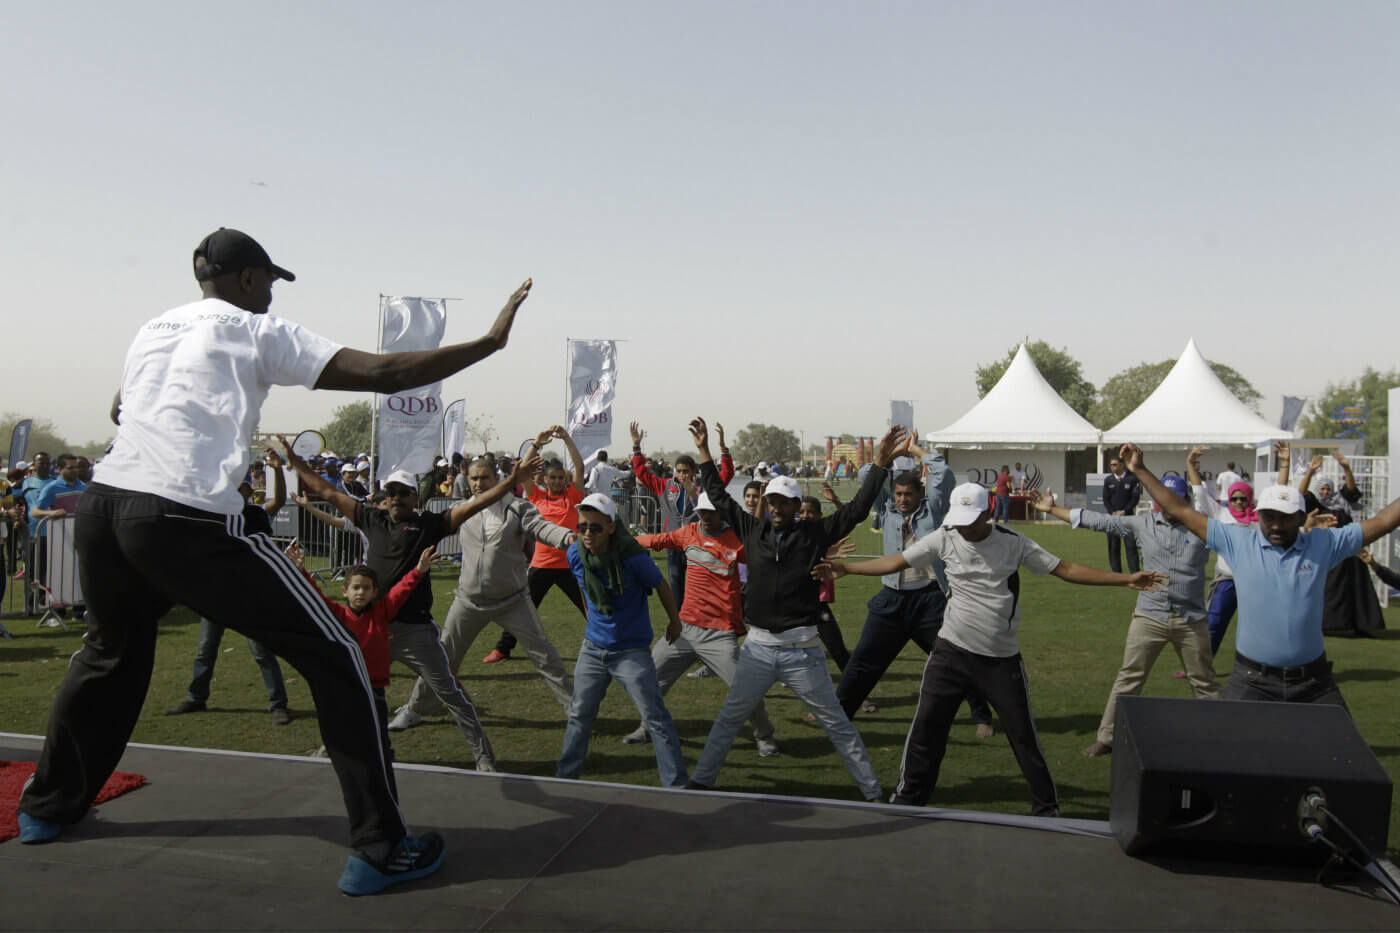 QDB NATIONAL SPORTS DAY